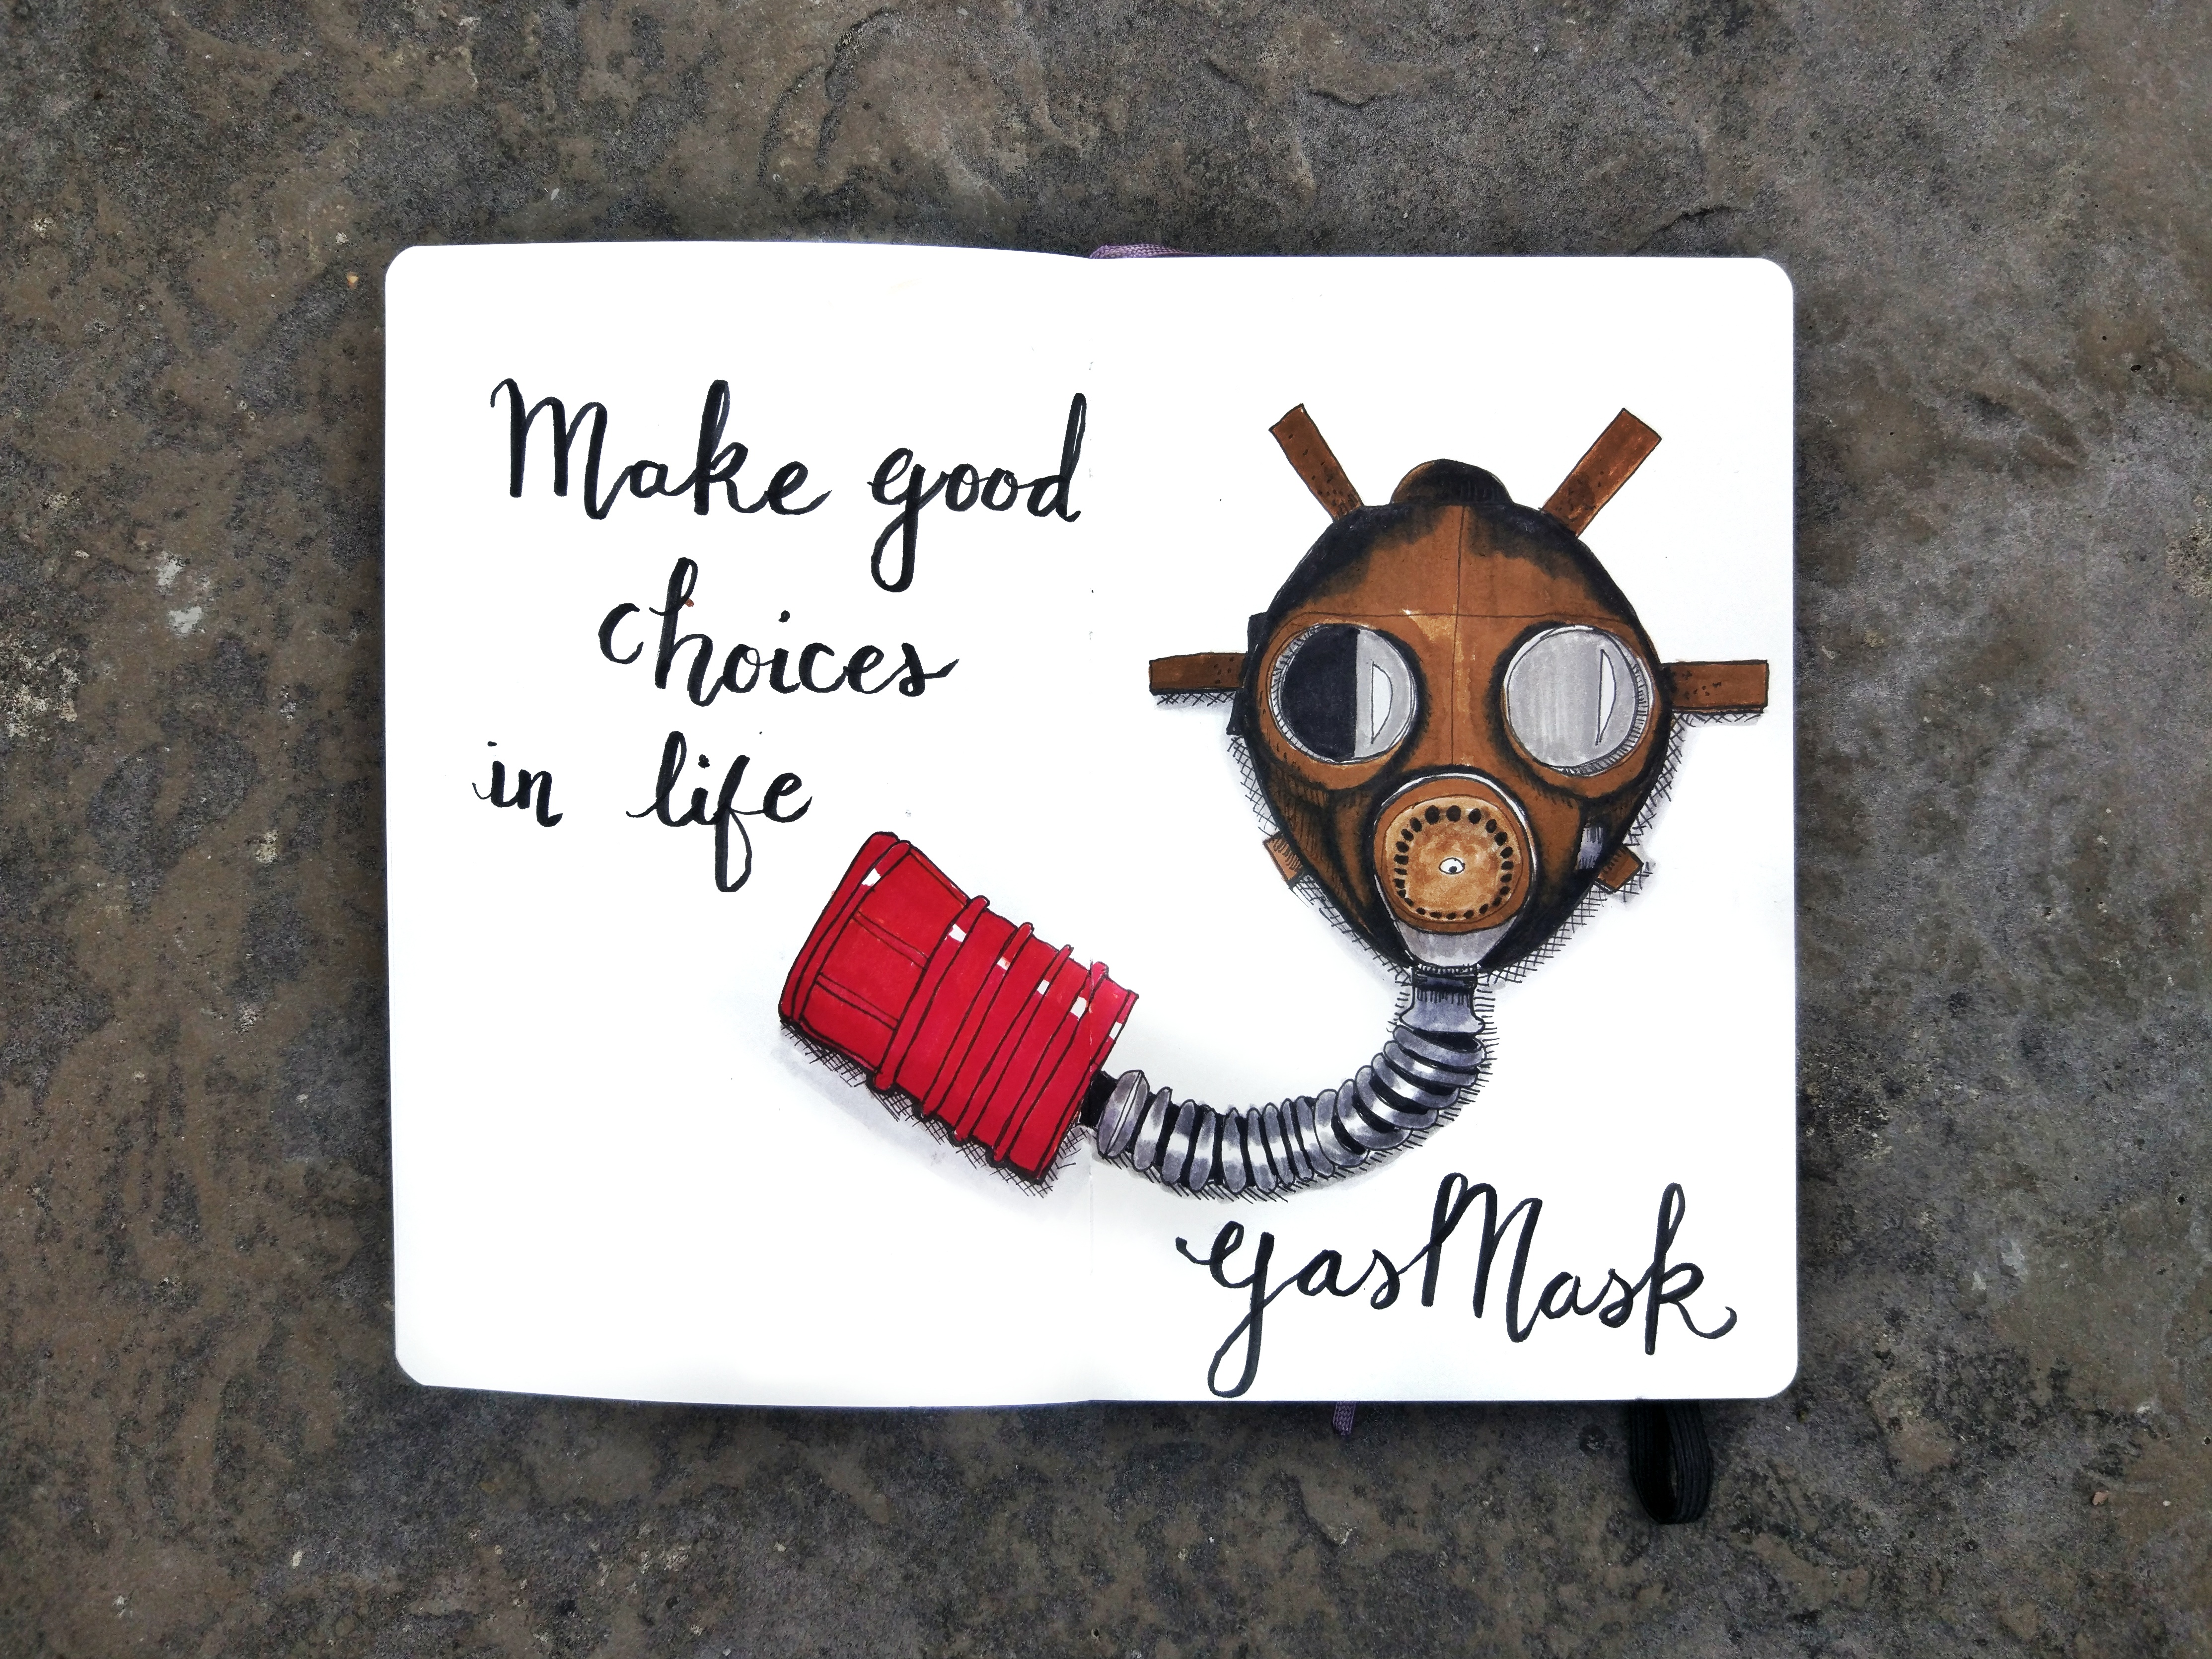 Make good choices in life